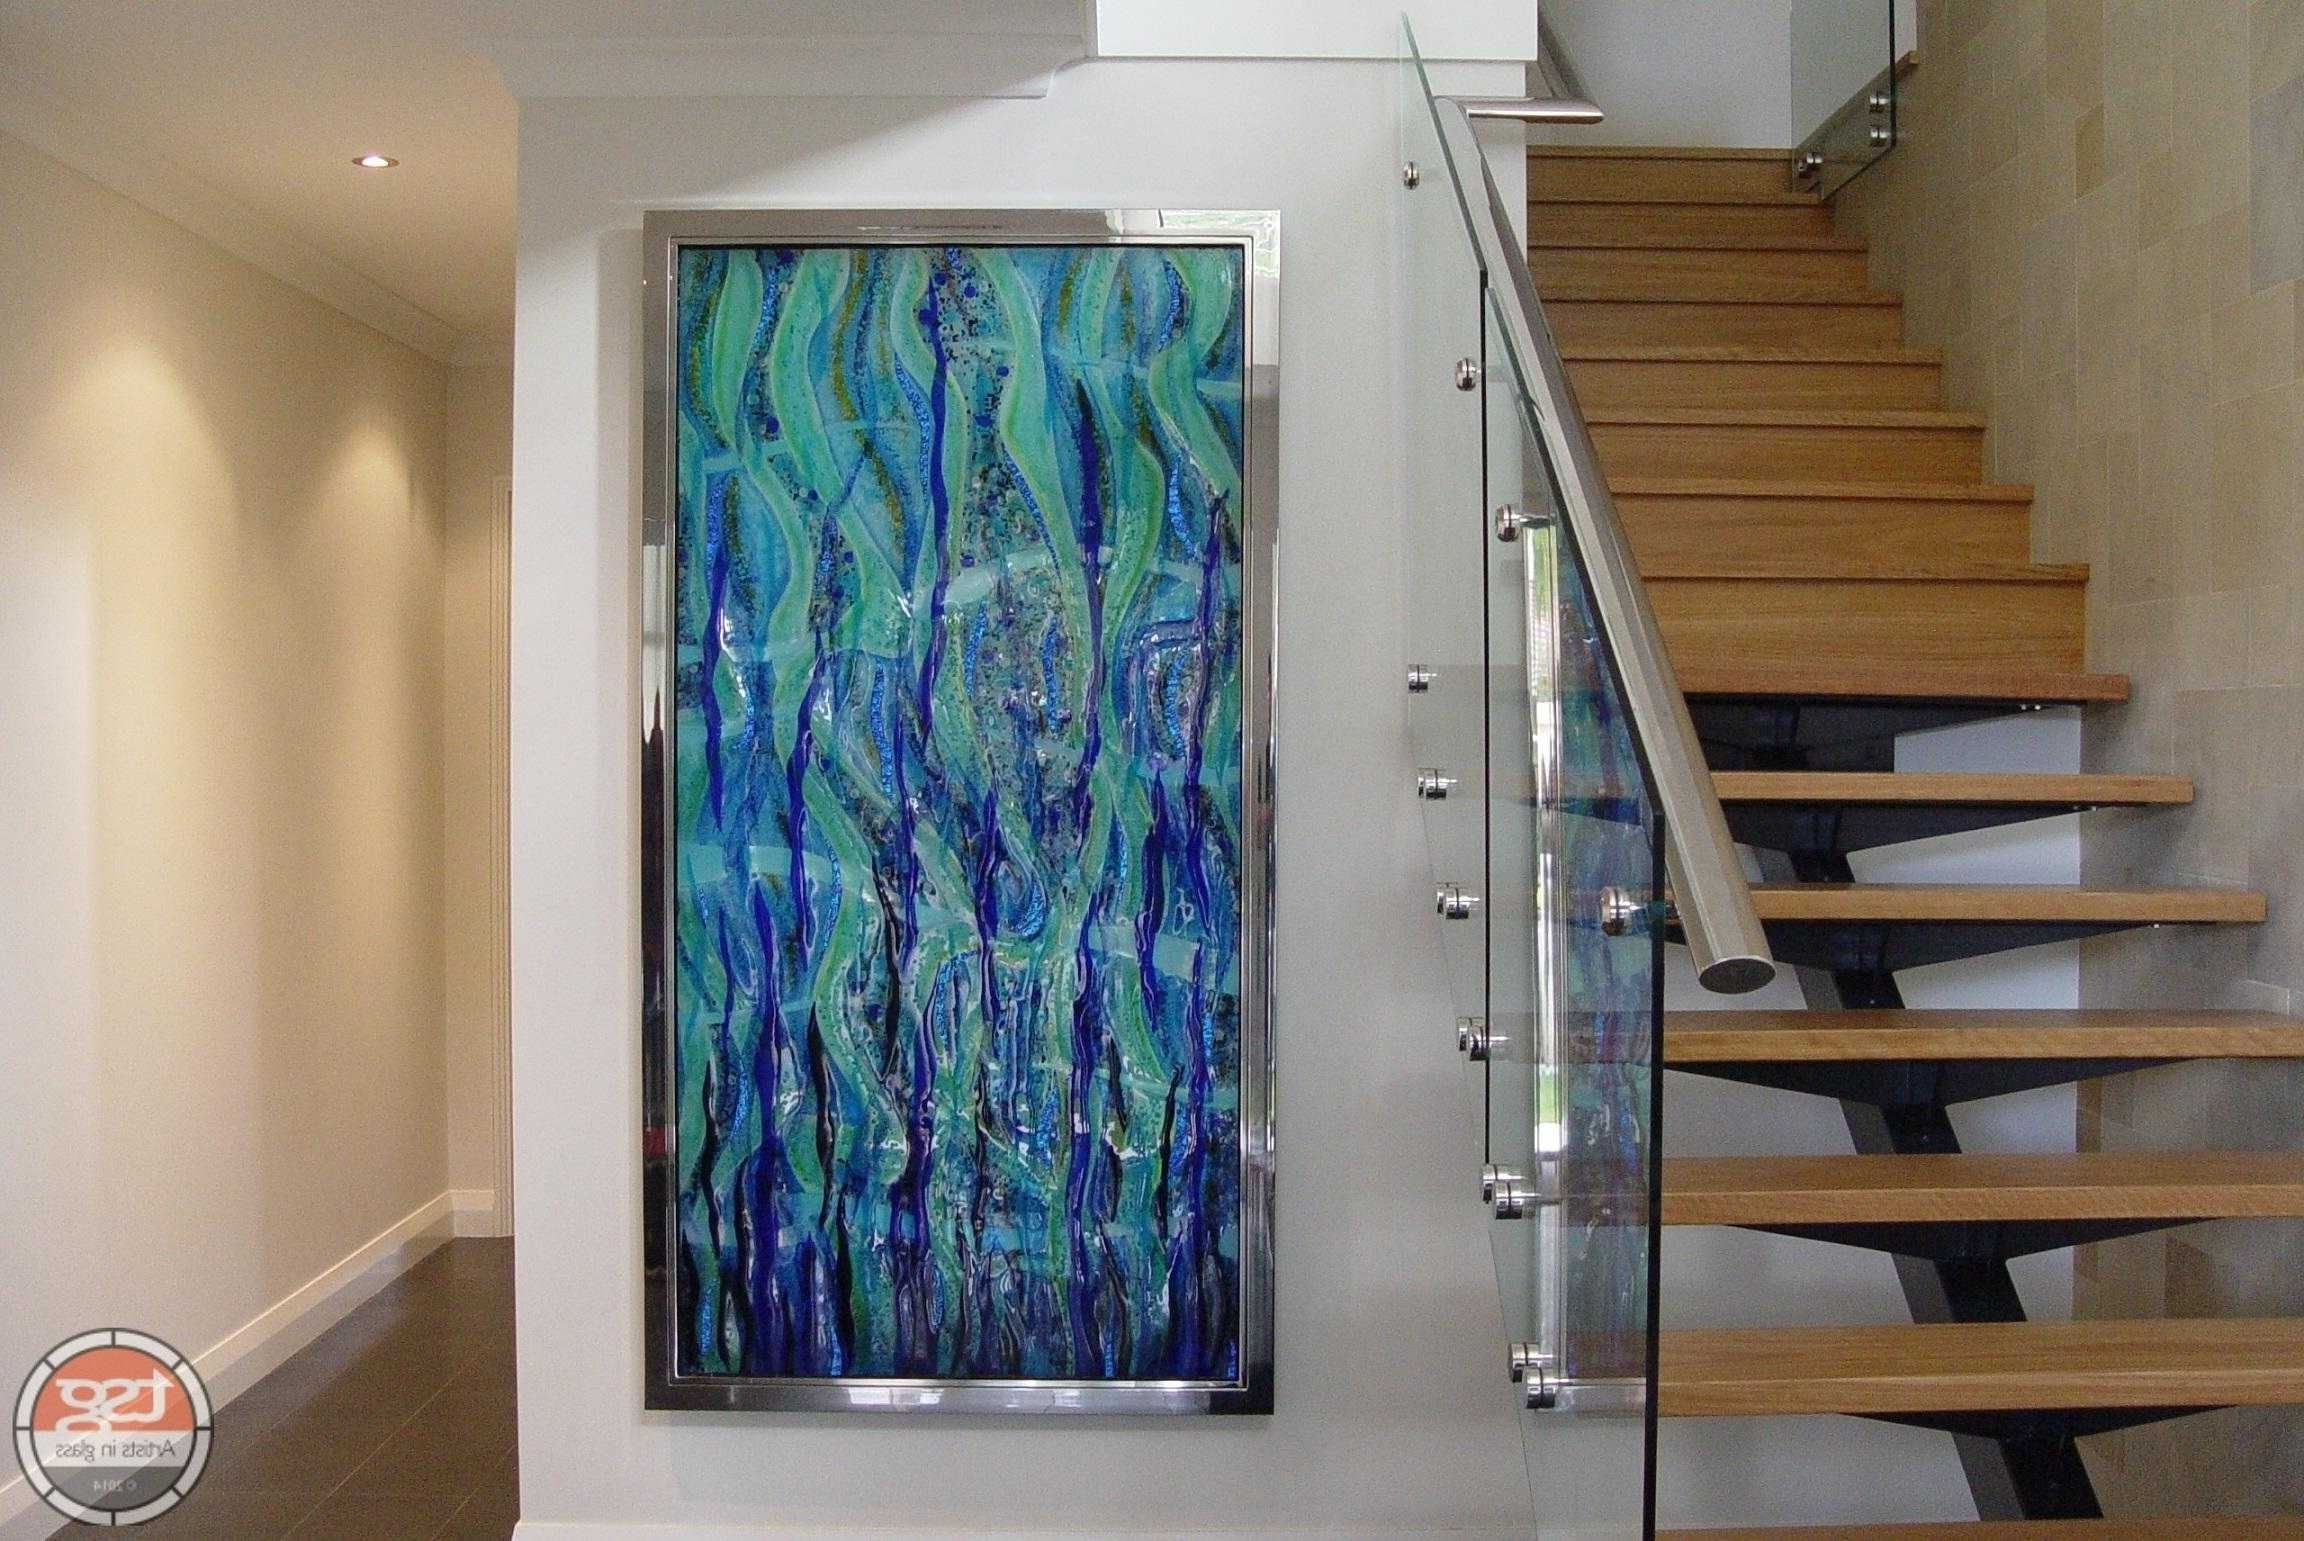 Most Current Glass Wall Art – Rpisite Regarding Fused Glass Wall Art Panels (View 8 of 15)